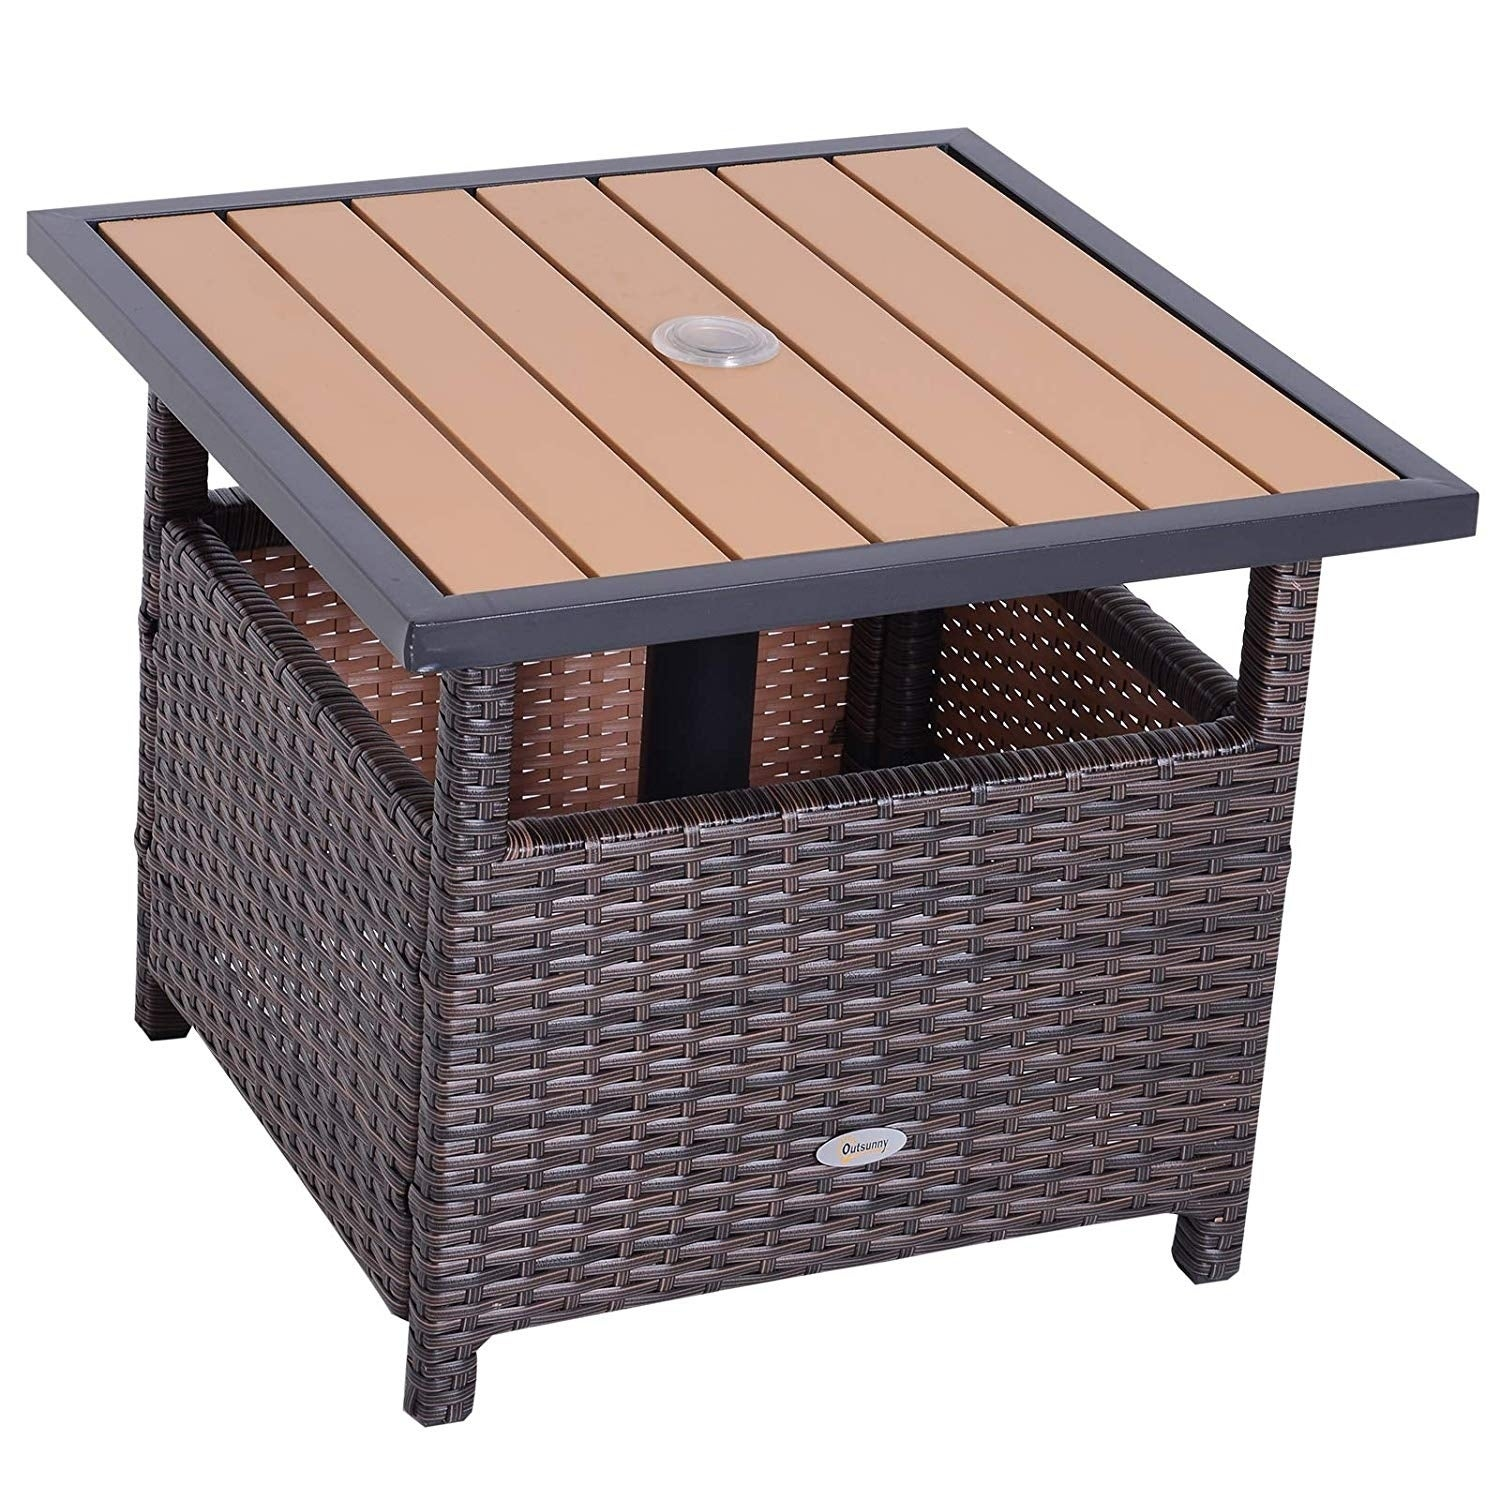 Outsunny Rattan Wicker Outdoor Accent Table With Umbrella Insert